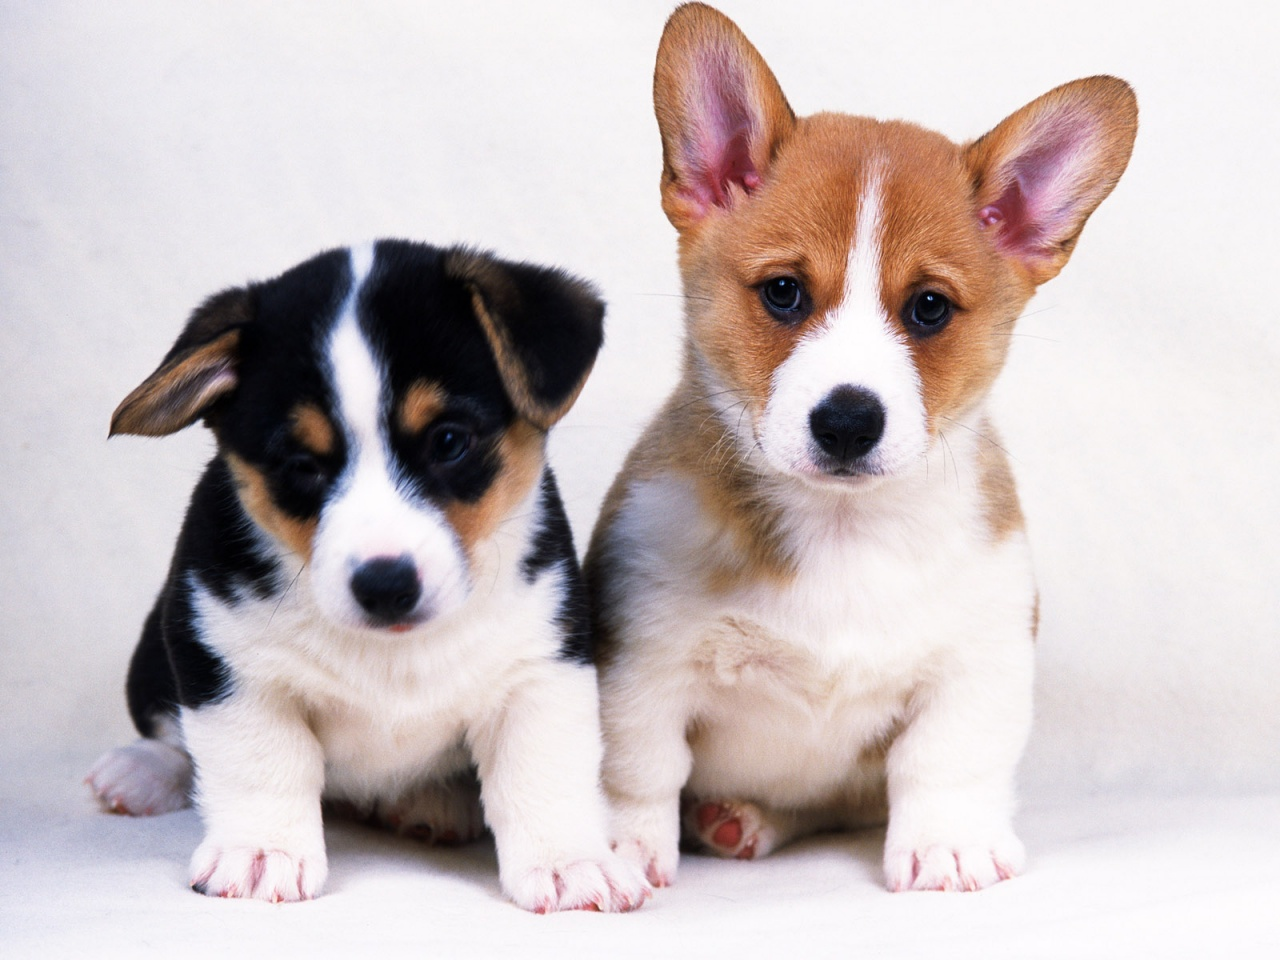 Cute puppy pictures cute dogs pictures puppy pictures for Pictures of cute dogs